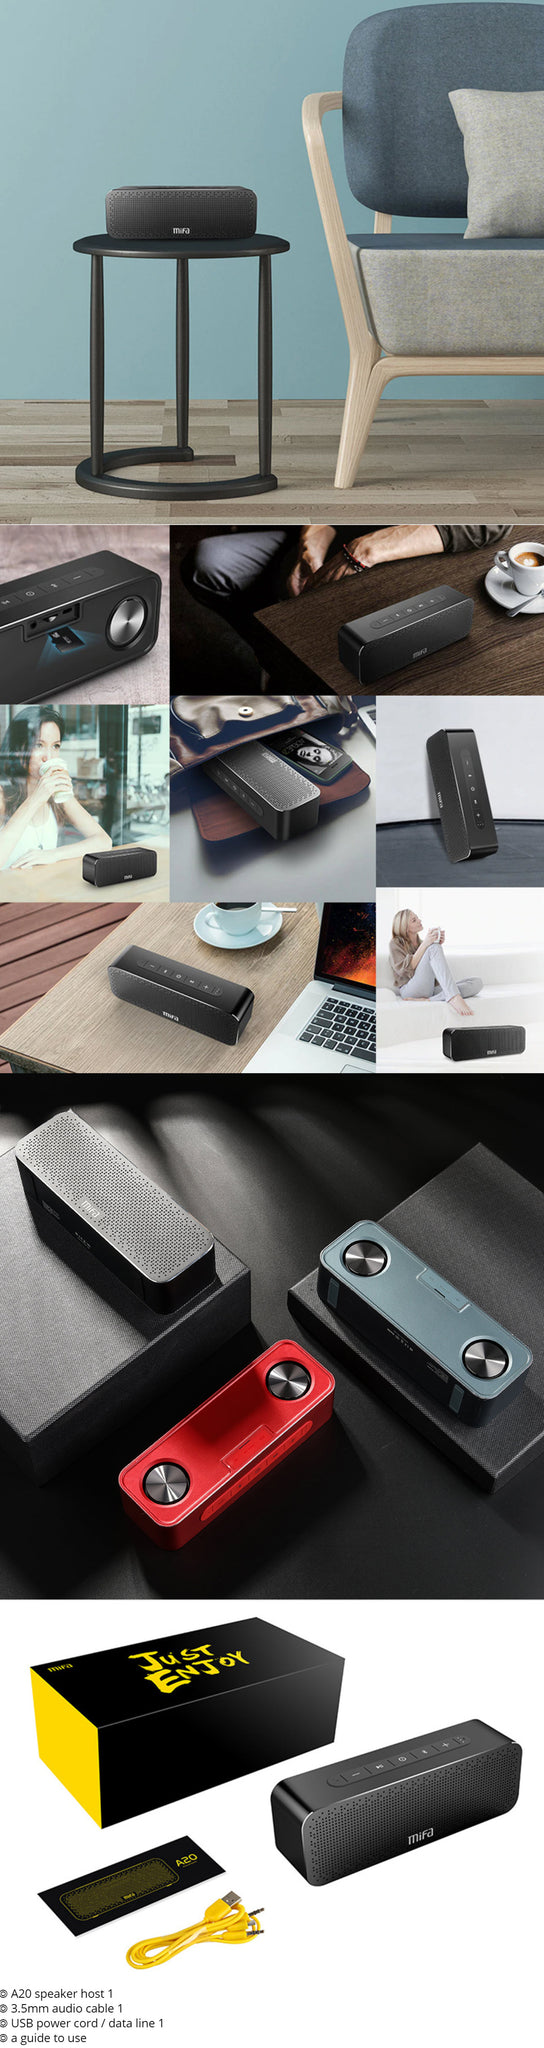 MIFA Portable Bluetooth Speaker Boombox Items List and Product Images